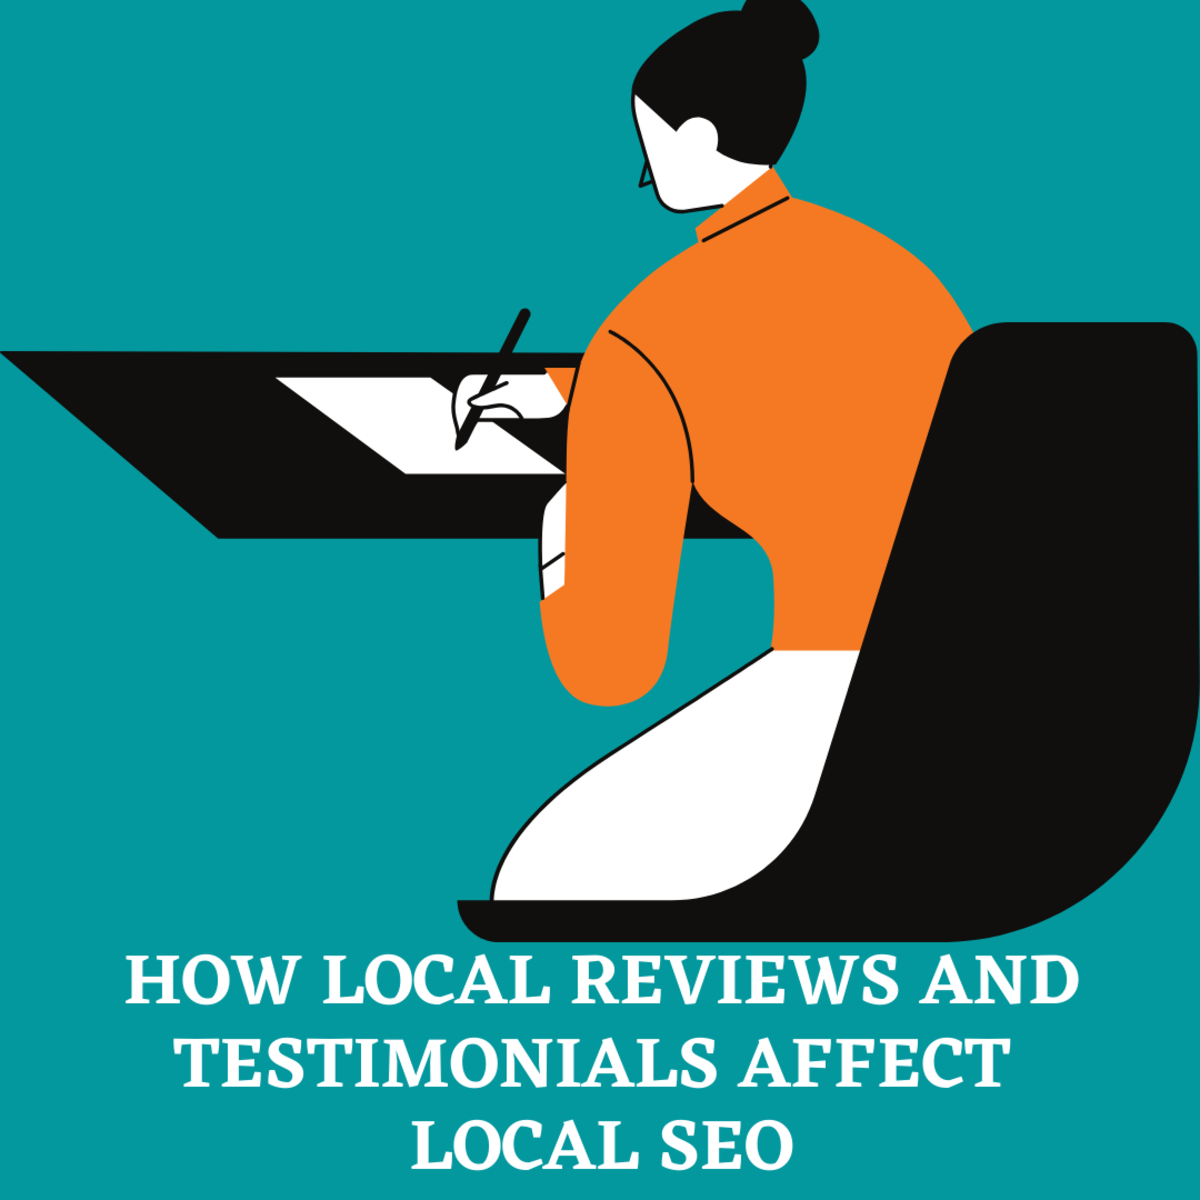 Read on to learn how reviews and testimonials can help your business.